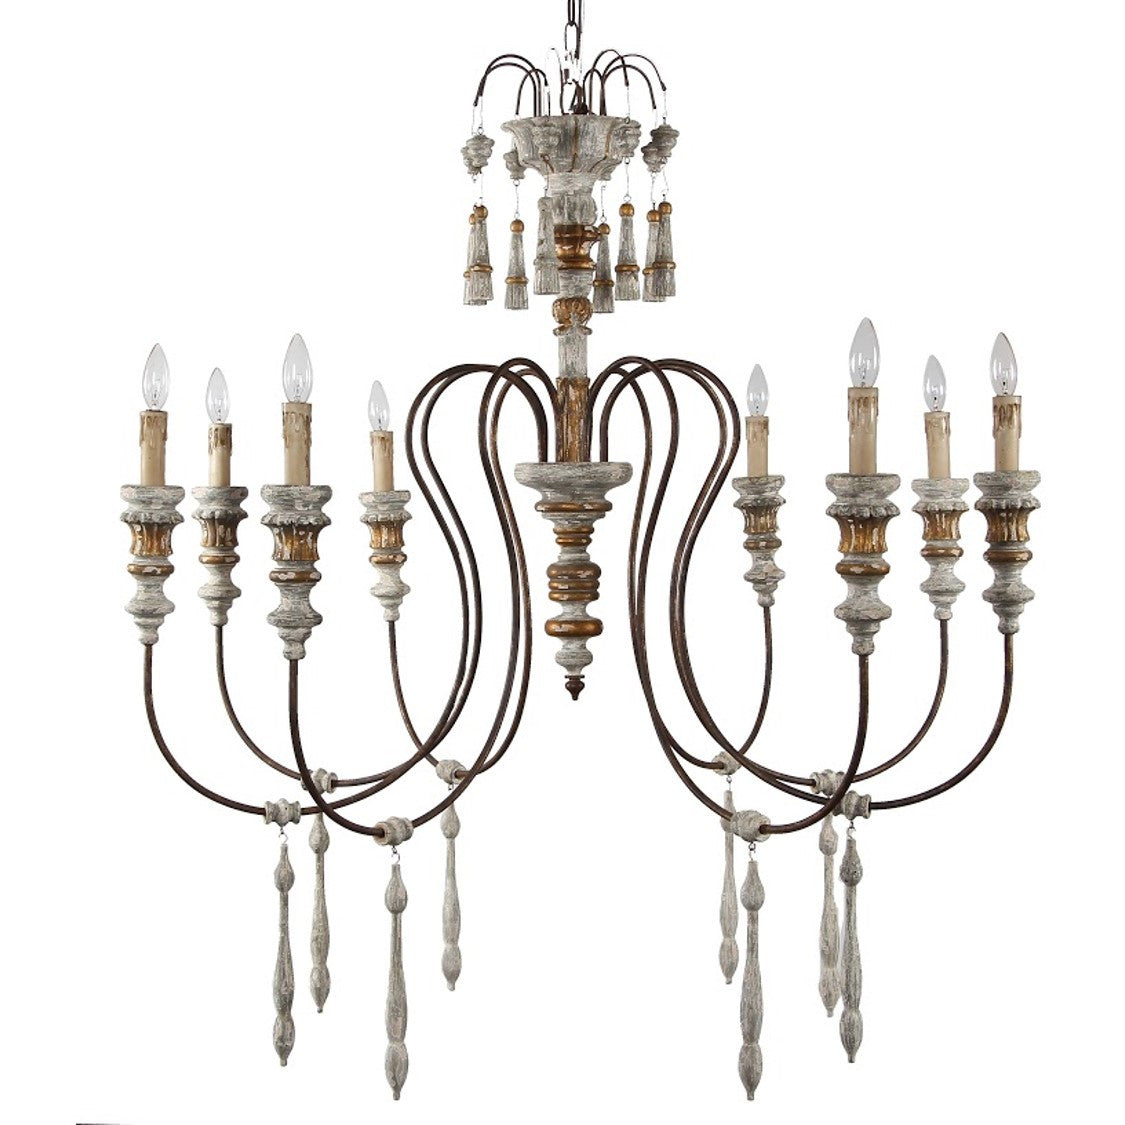 Carlotta 8-Light Chandelier in French White, by Terracotta Lighting, CHAN8036-8